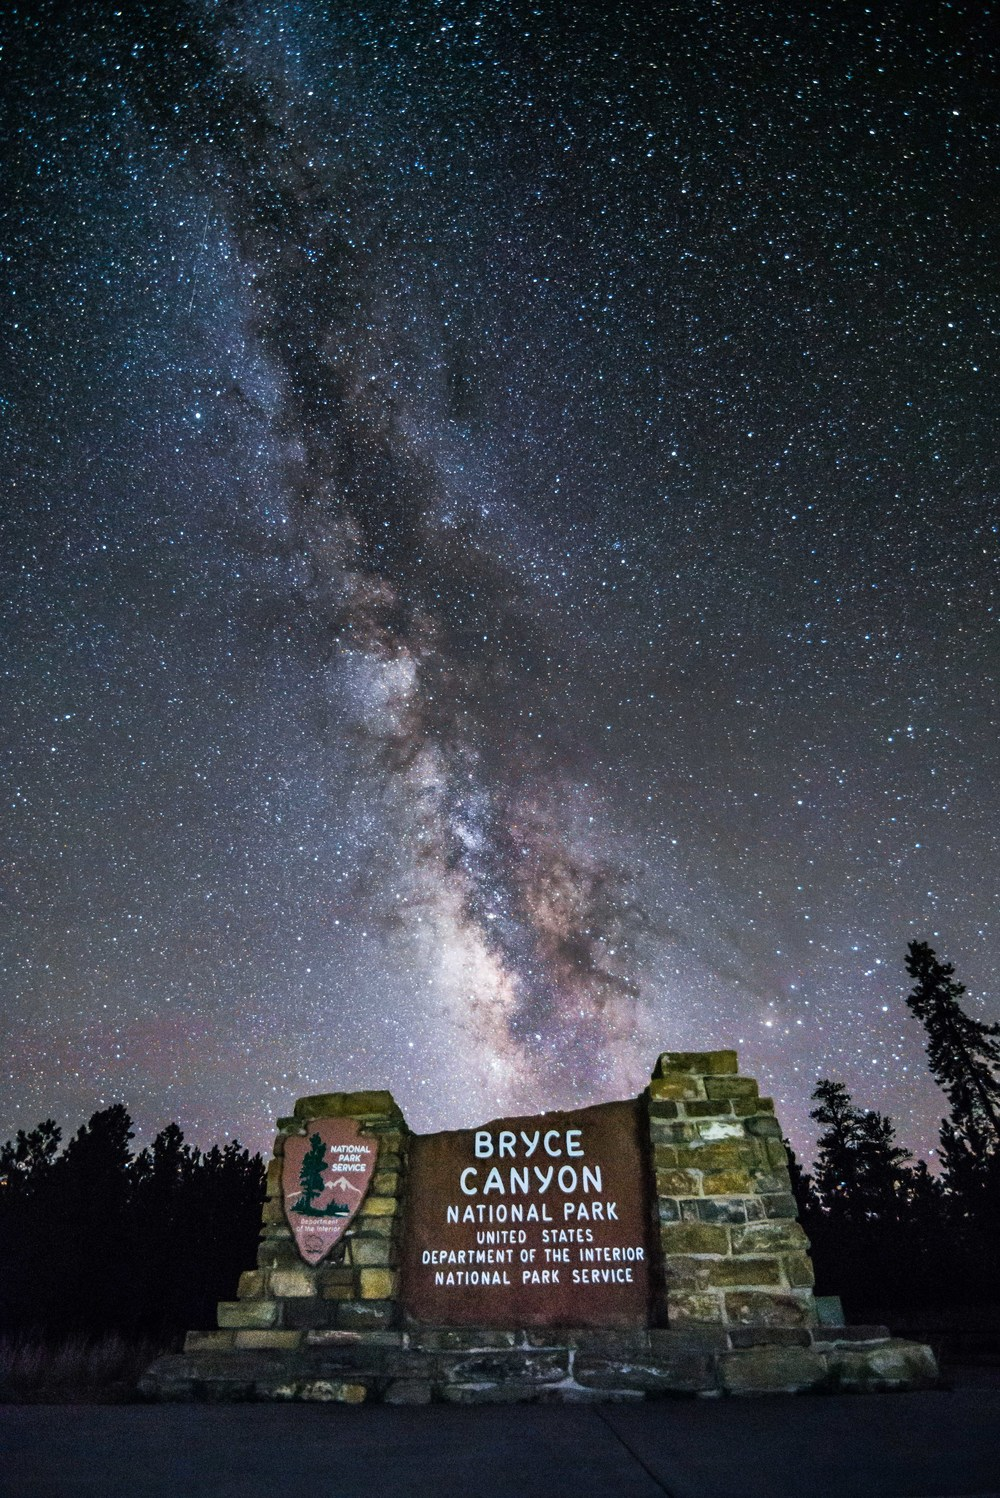 Bryce Canyon Welcome Sign with Milky Way